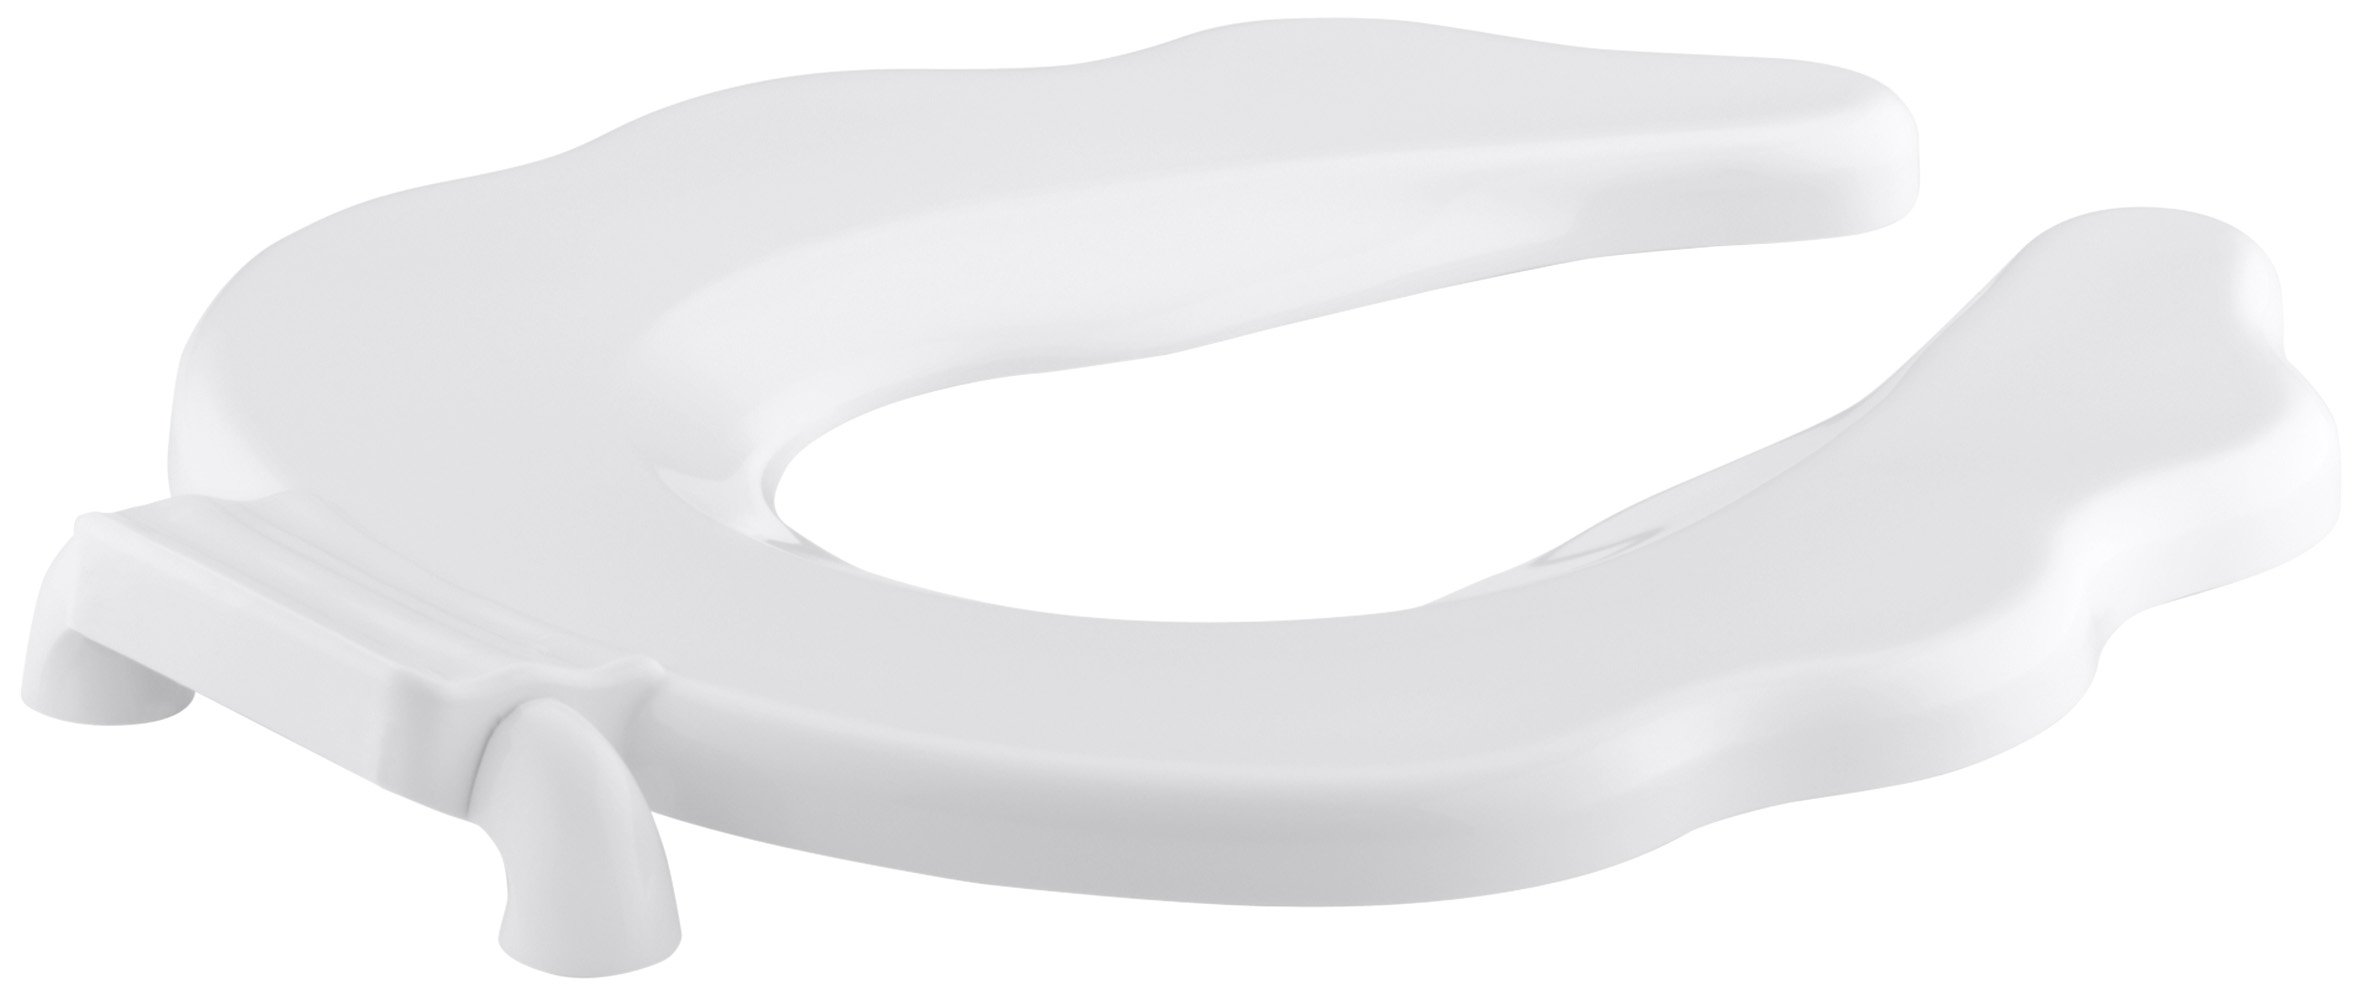 KOHLER K-4686-A-0 Primary Round Open-Front Toilet Seat with Antimicrobial Agent, White